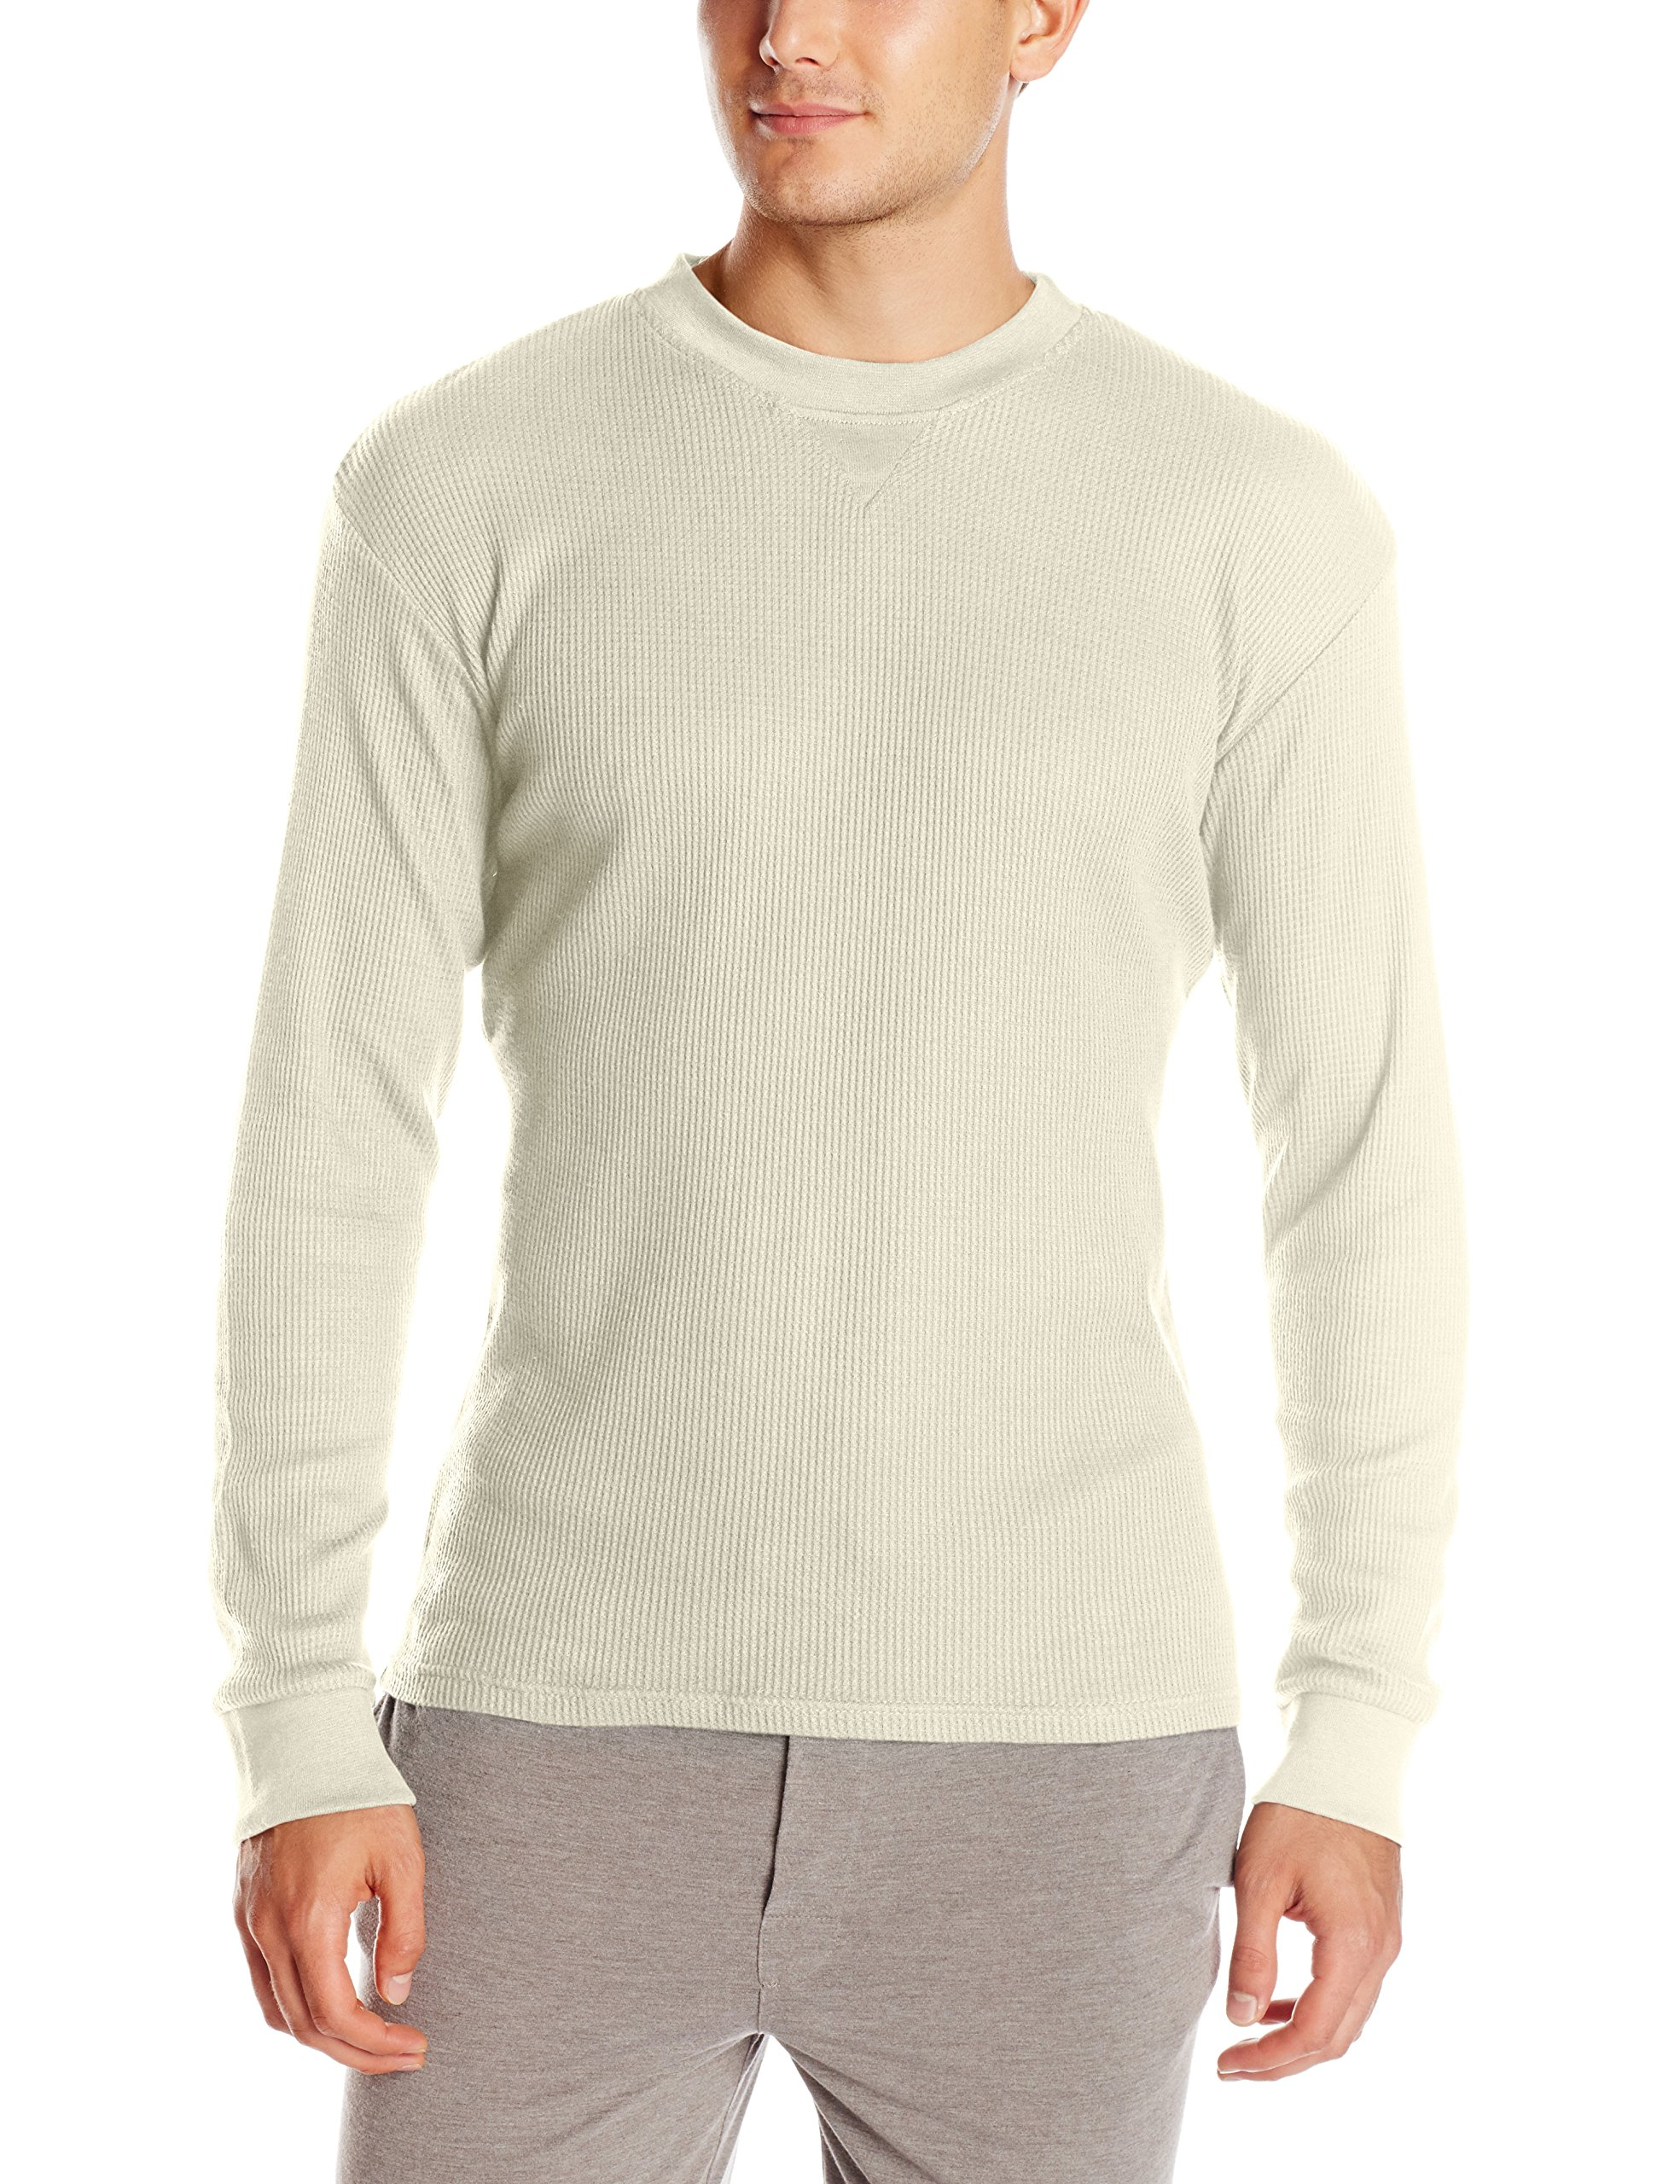 Essentials by Seven Apparel Men's Thermal Crew Neck Shirt, Cream, Large